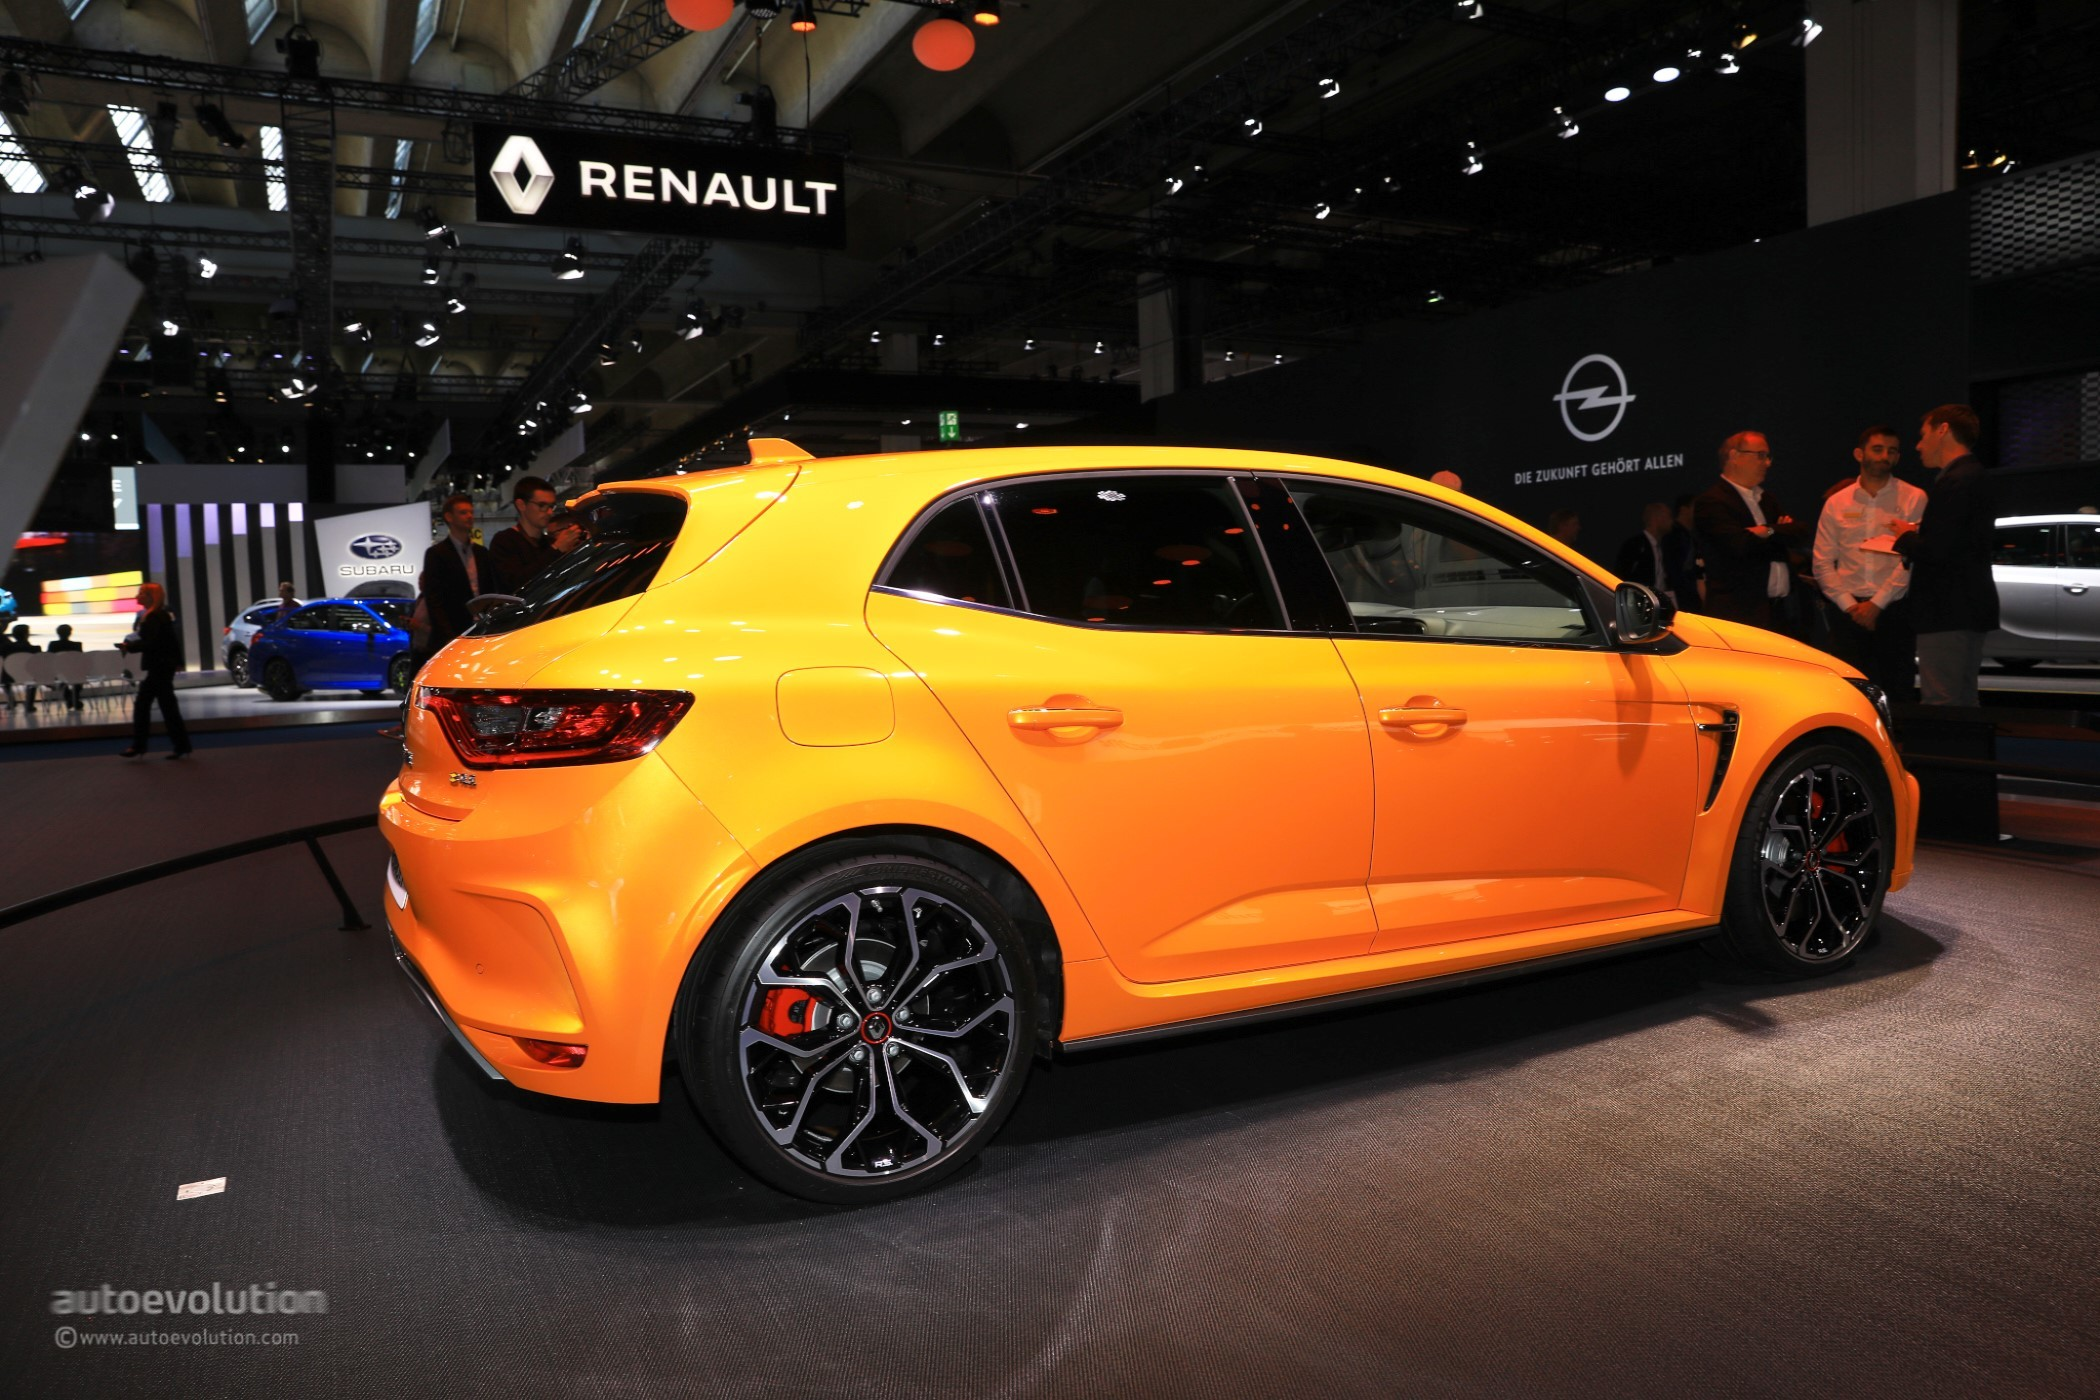 2018 Renault Megane Rs Is The Best Hot Hatchback At Iaa 2017